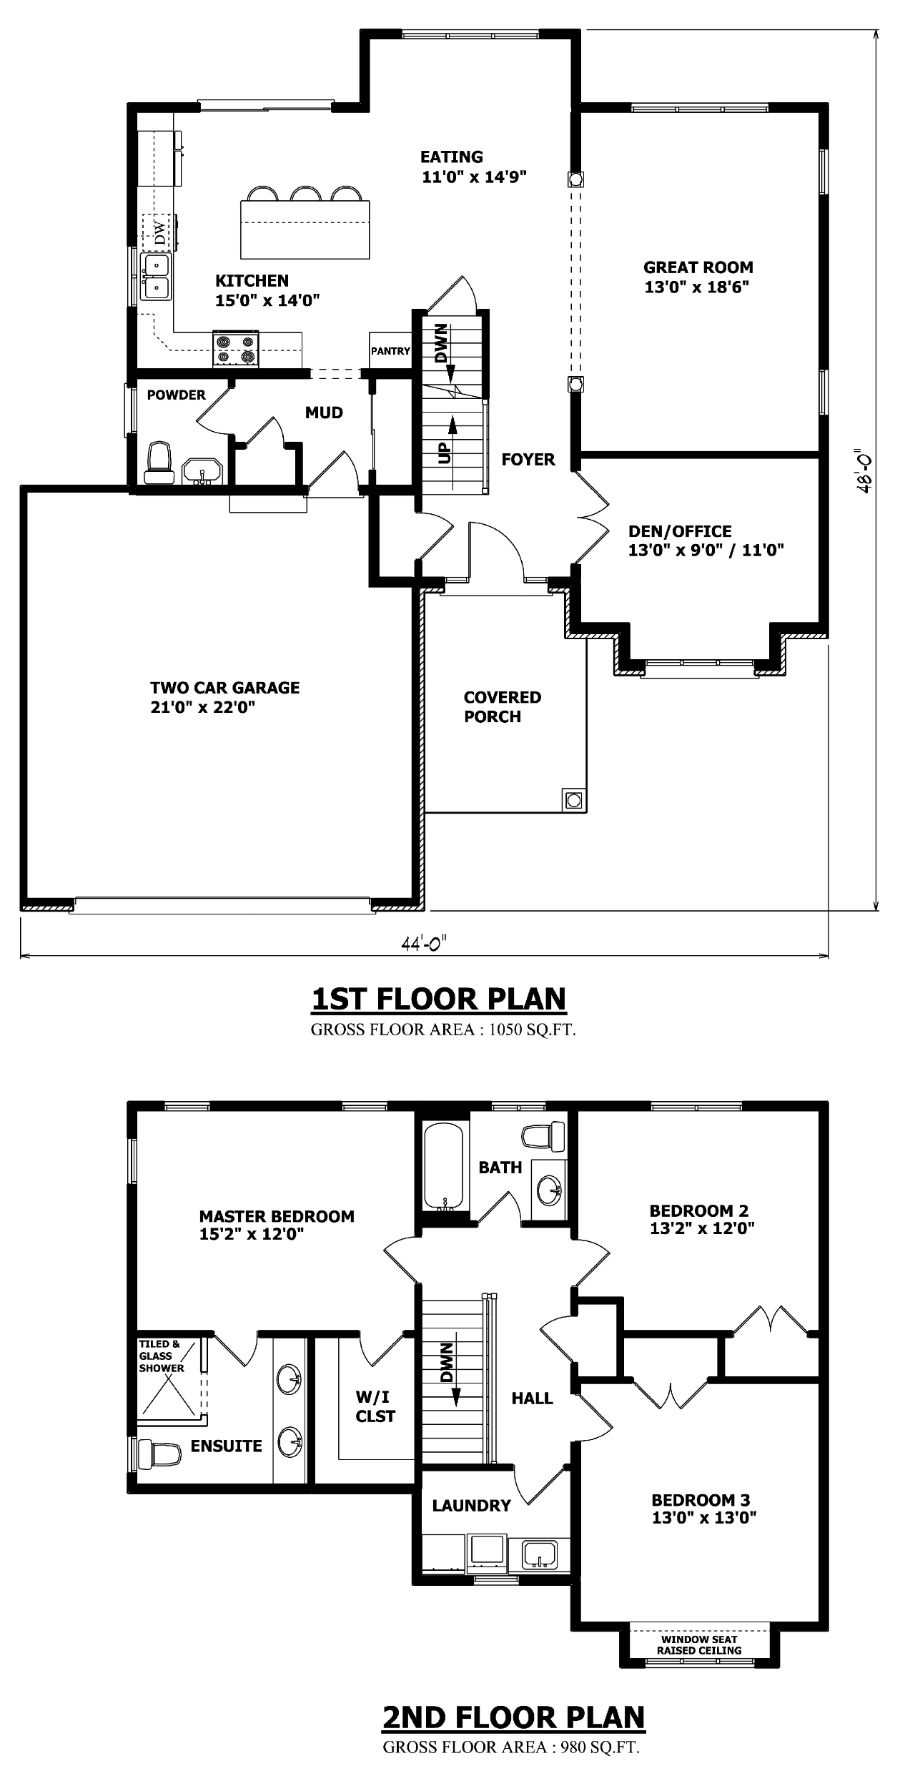 Brampton two storey house plan House plans, Two story